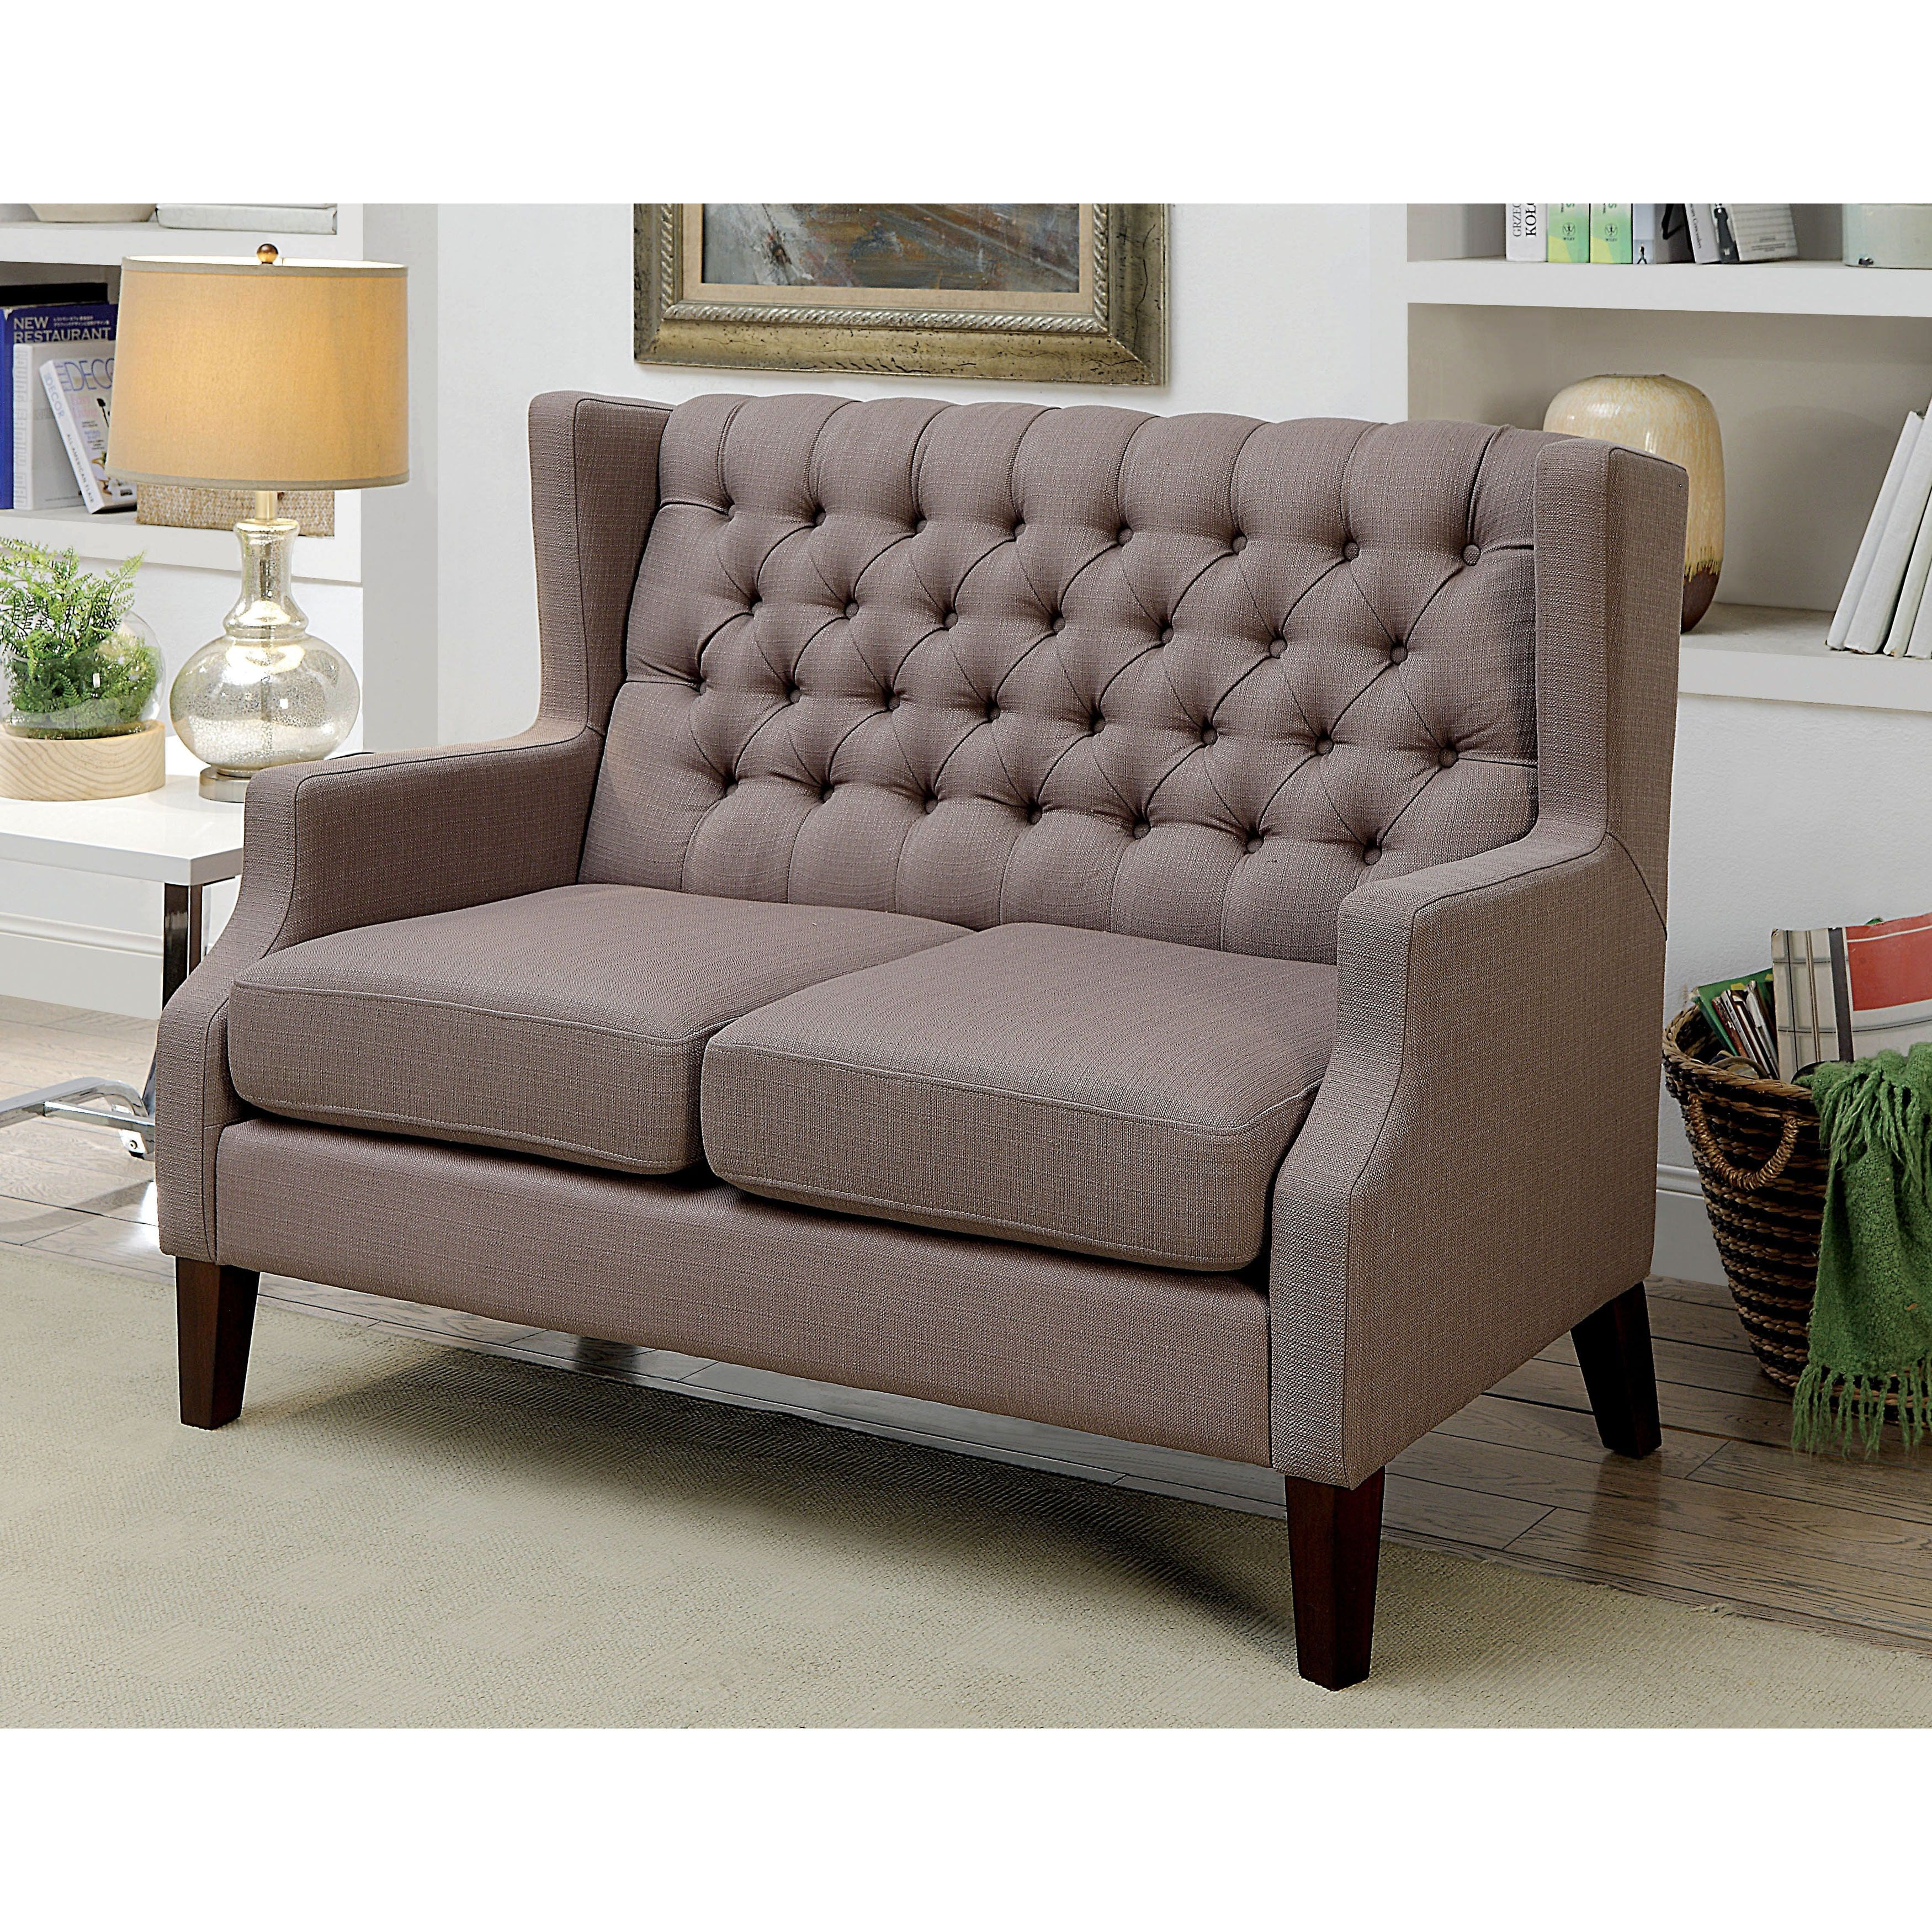 Furniture Of America Venich Contemporary Brown Fabric Tufted Wingback  Loveseat (Brown)